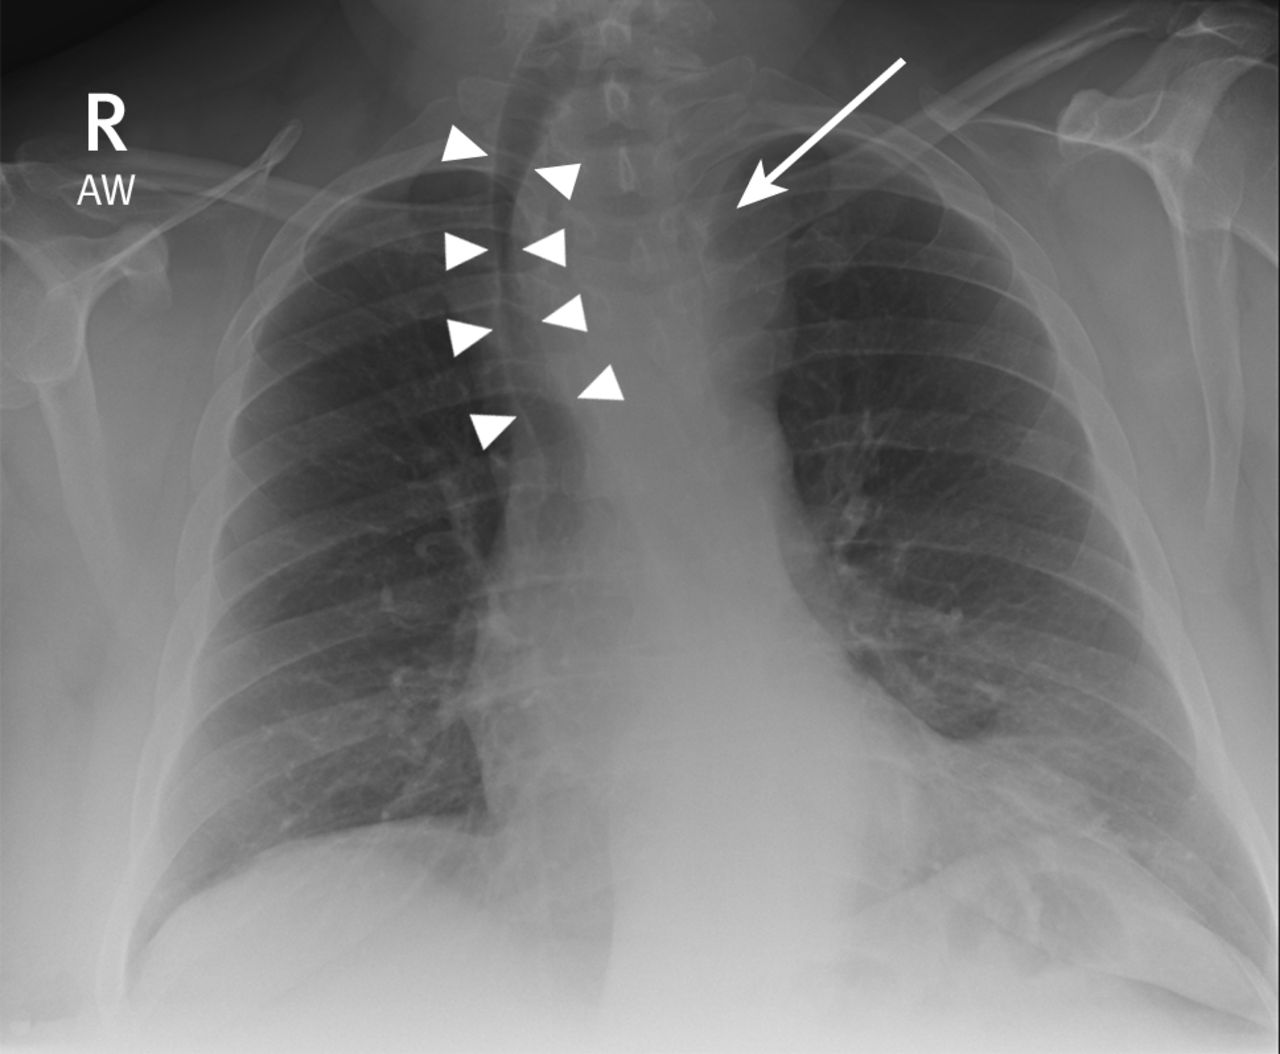 An Abnormal Chest Radiograph